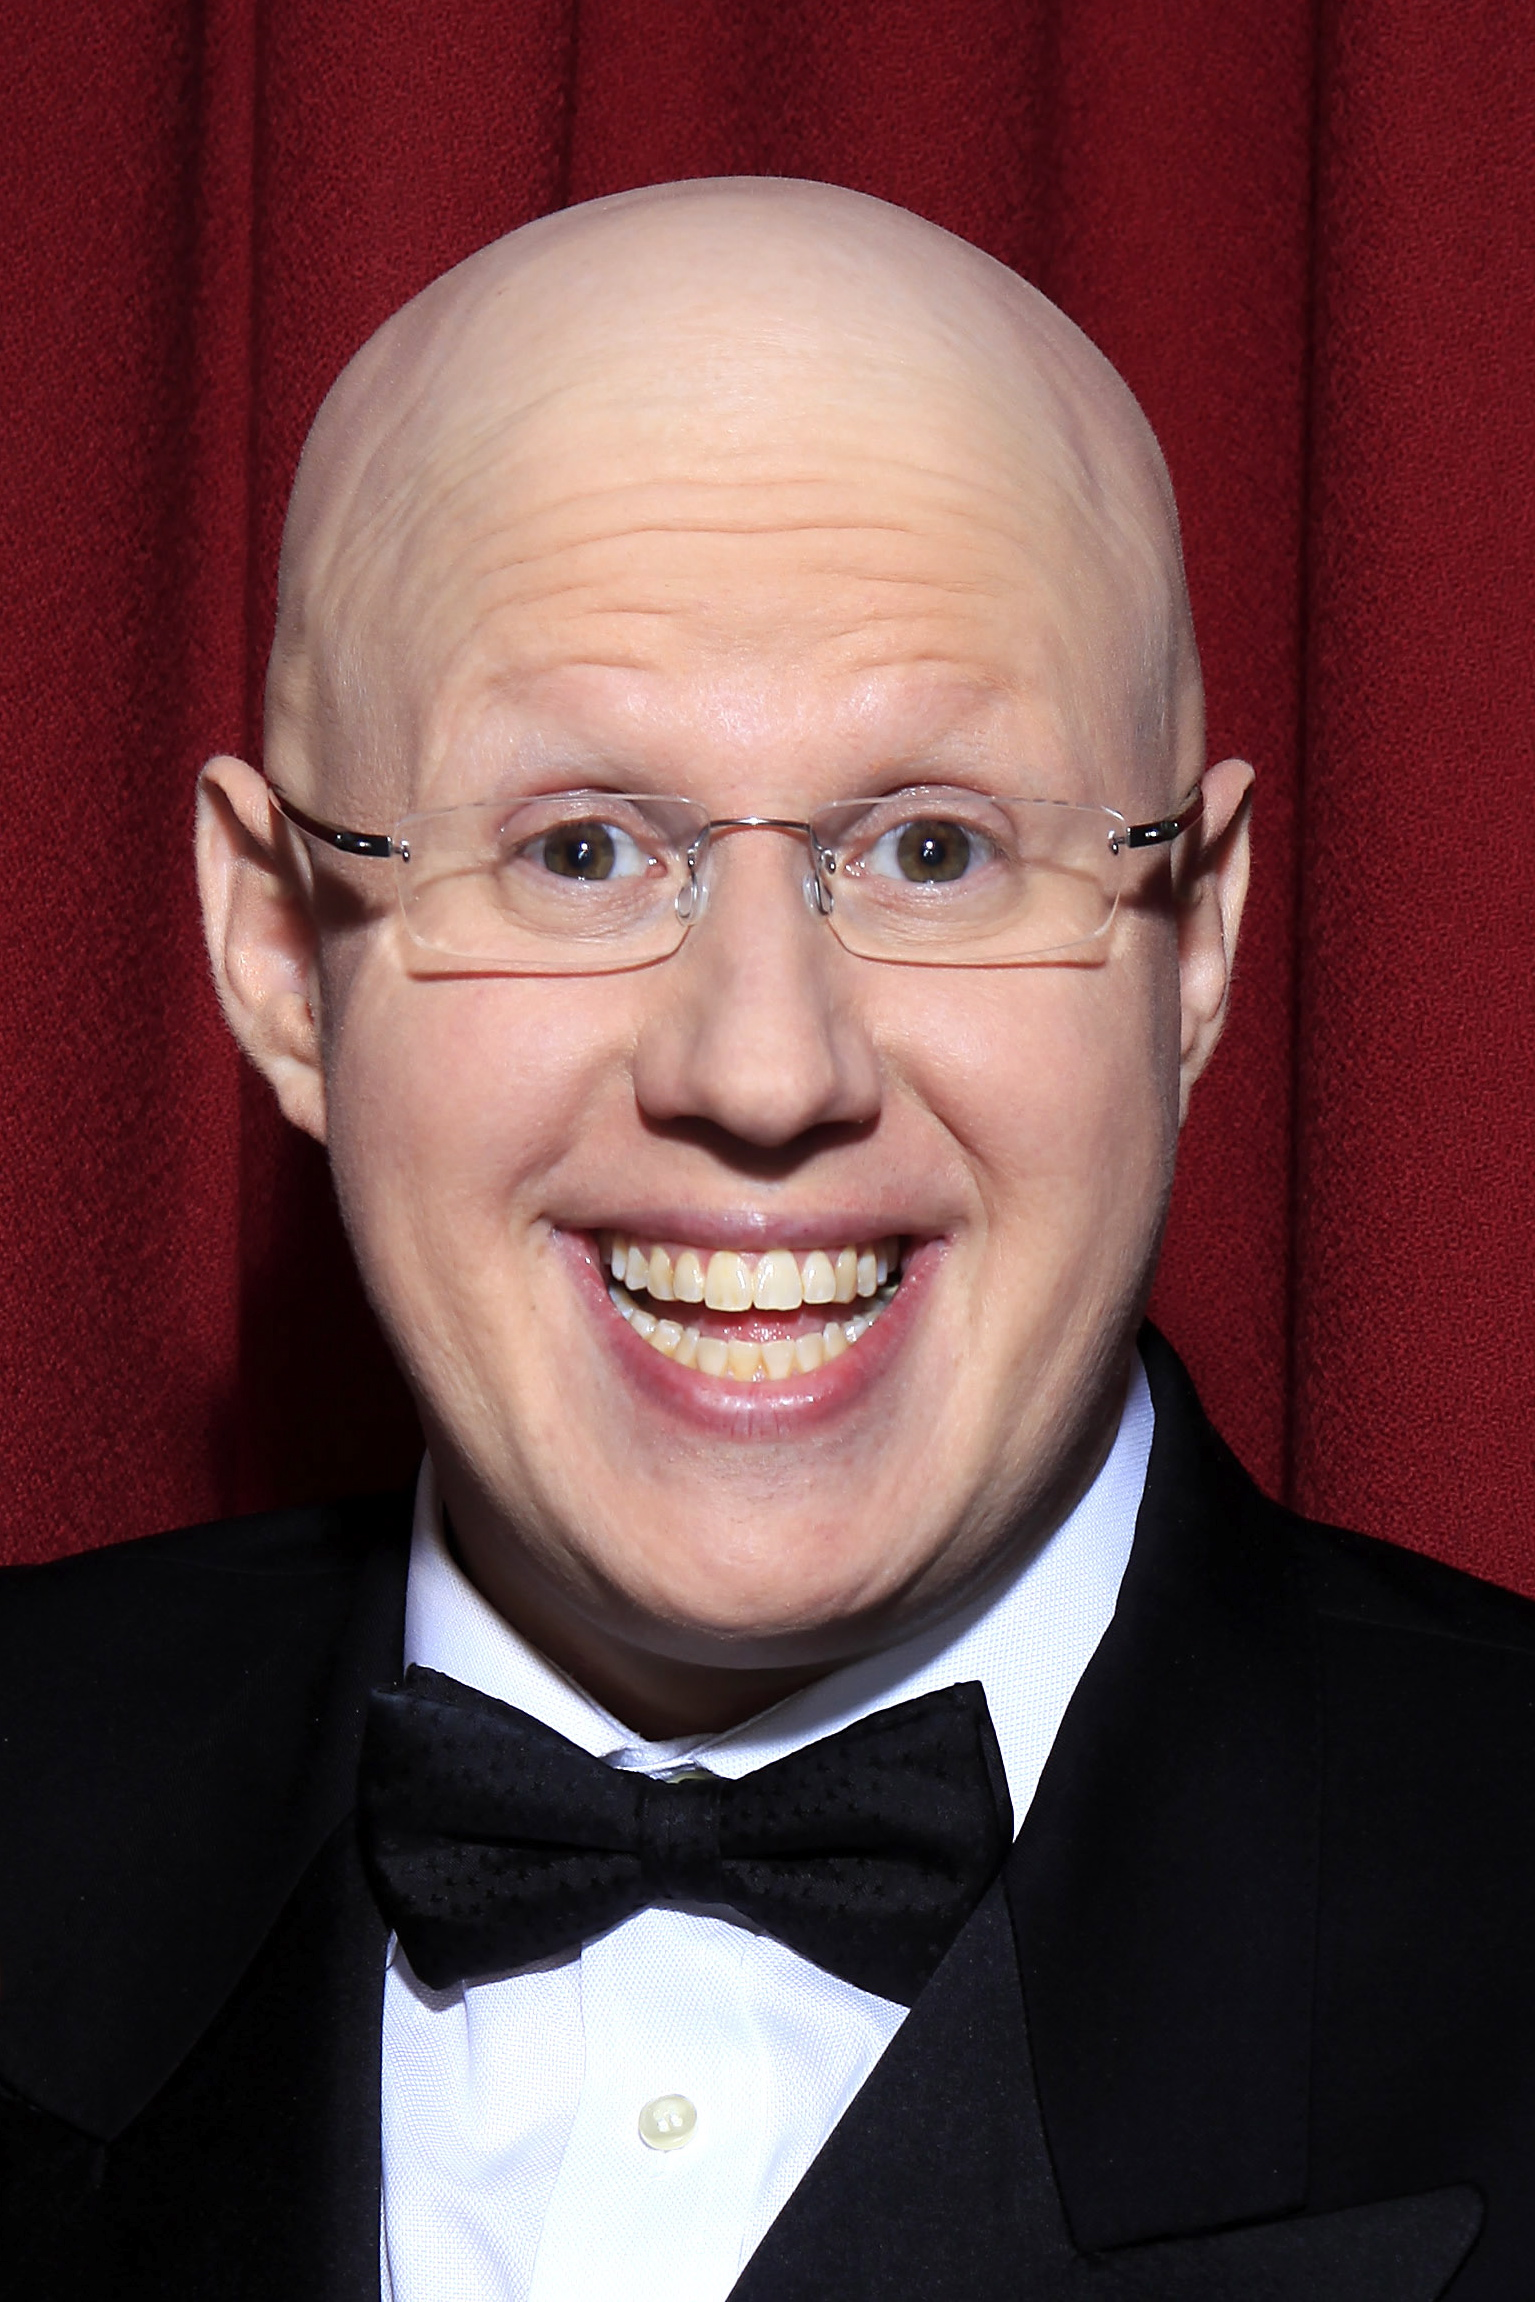 matt lucas interviewmatt lucas bbc, matt lucas wiki, matt lucas deloitte, matt lucas interview, matt lucas eyebrows, matt lucas 2016, matt lucas wife, matt lucas wedding, matt lucas and david walliams, matt lucas married, matt lucas actor, matt lucas nardole, matt lucas doctor who, matt lucas alice in wonderland, matthew lucas young, matt lucas qi, matt lucas voice actor, matt lucas and rebel wilson, matt lucas rugby, matt lucas imdb